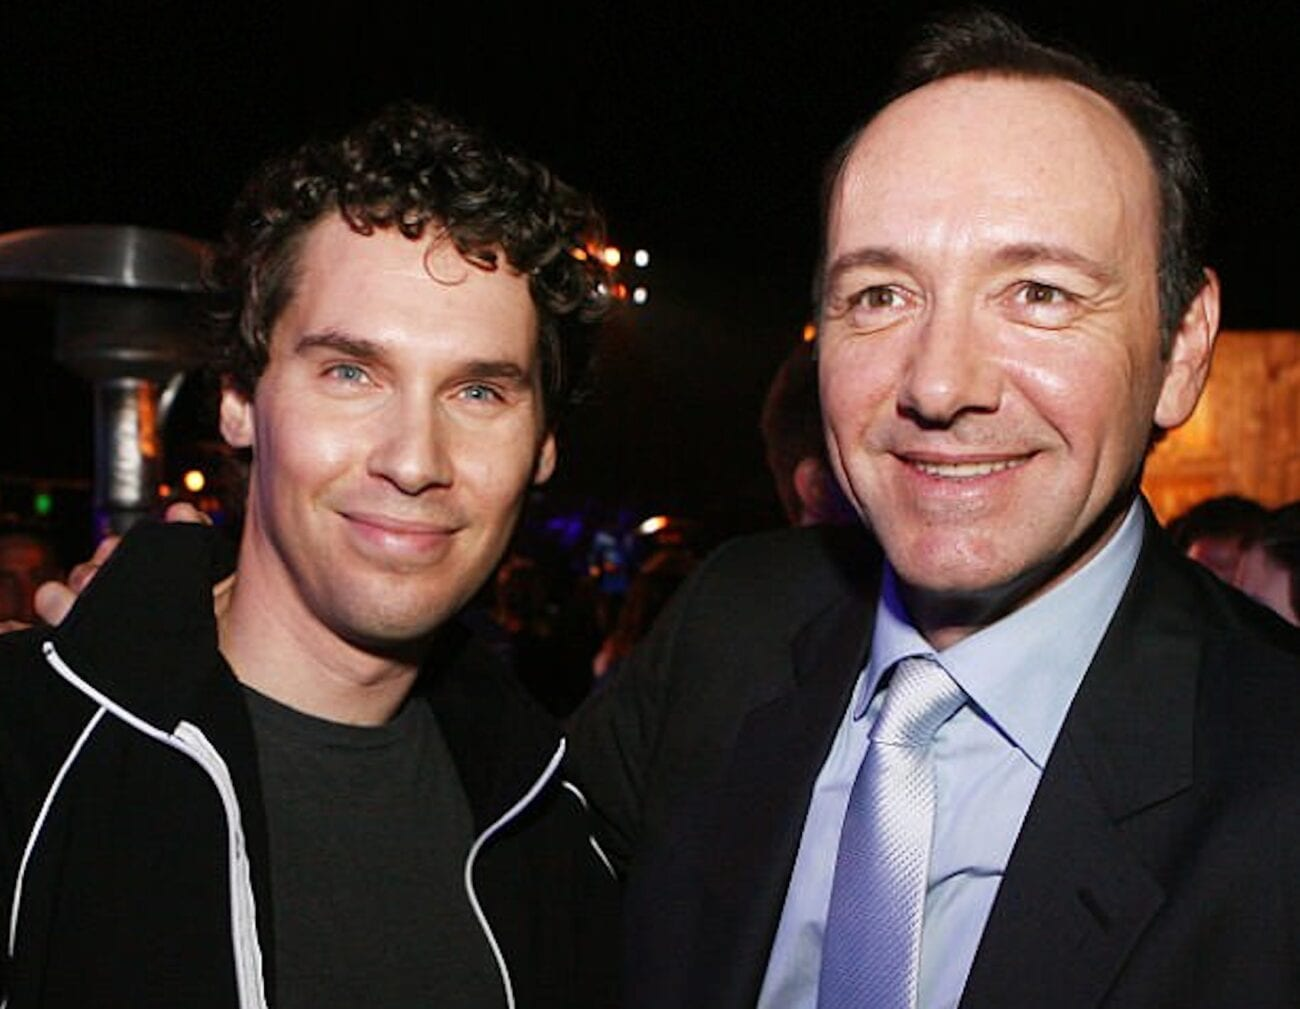 When Bryan Singer was fired from 'Bohemian Rhapsody', most believed it was due to his sexual assault allegations against him. Here's what we know.